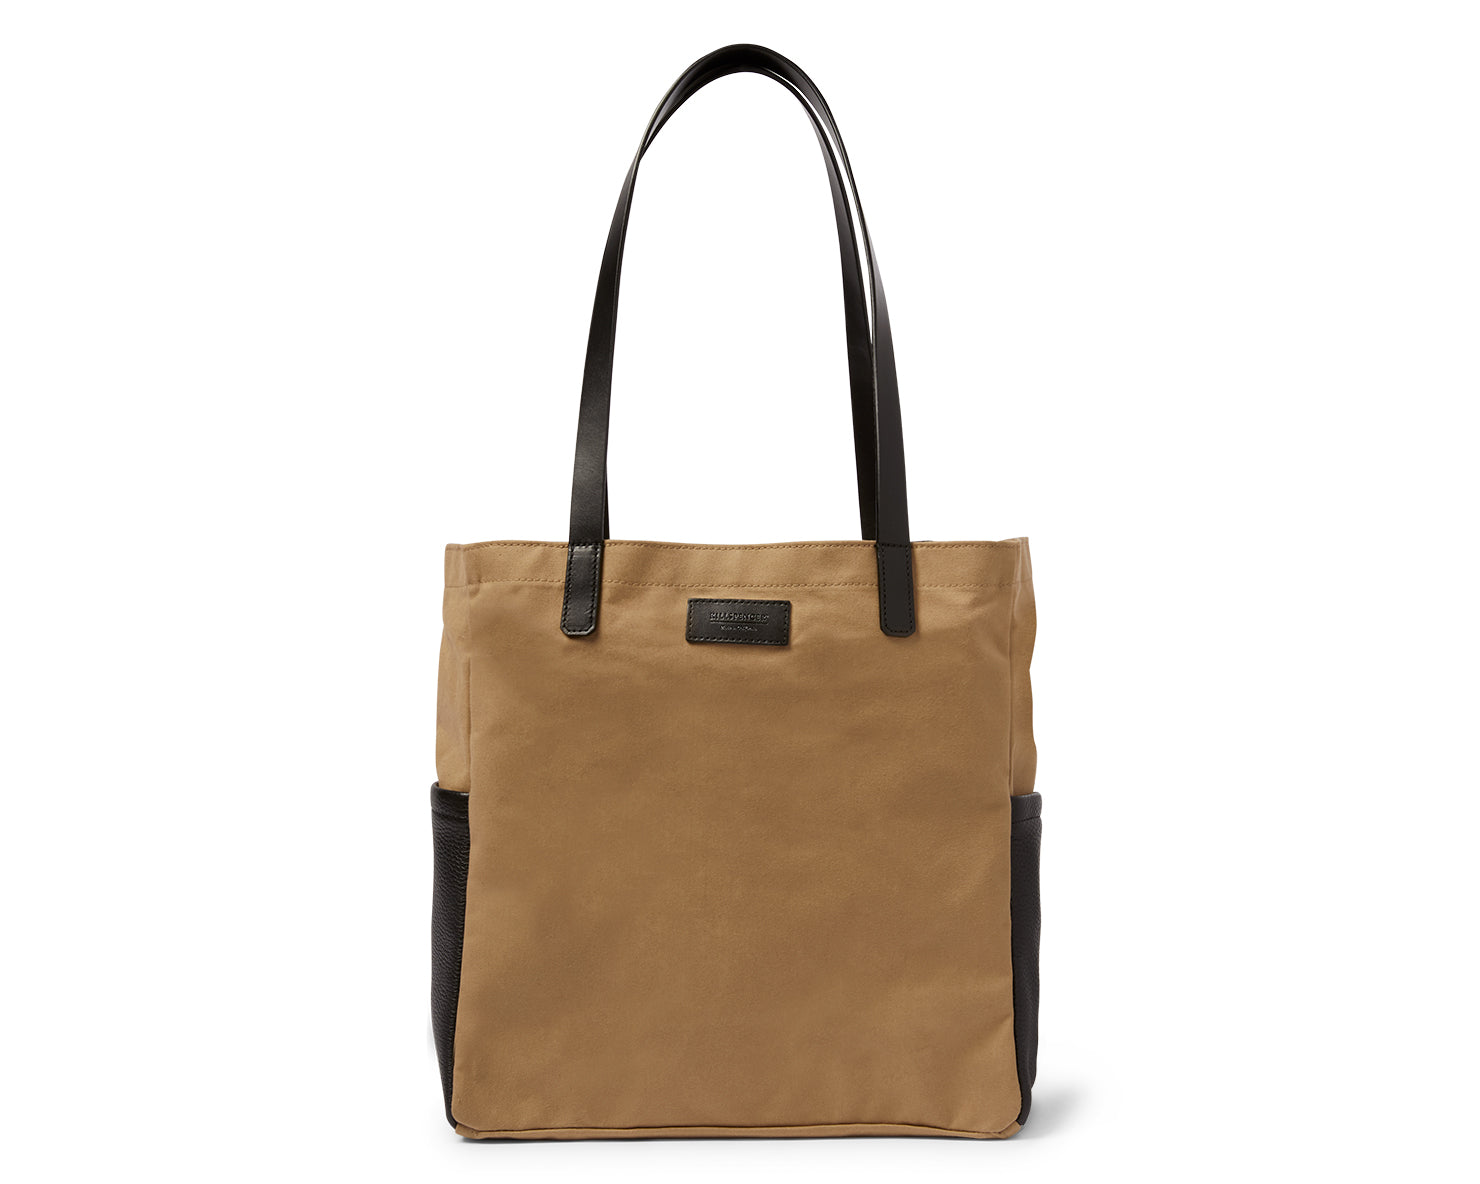 BOX TOTE | KILLSPENCER® - Khaki Canvas